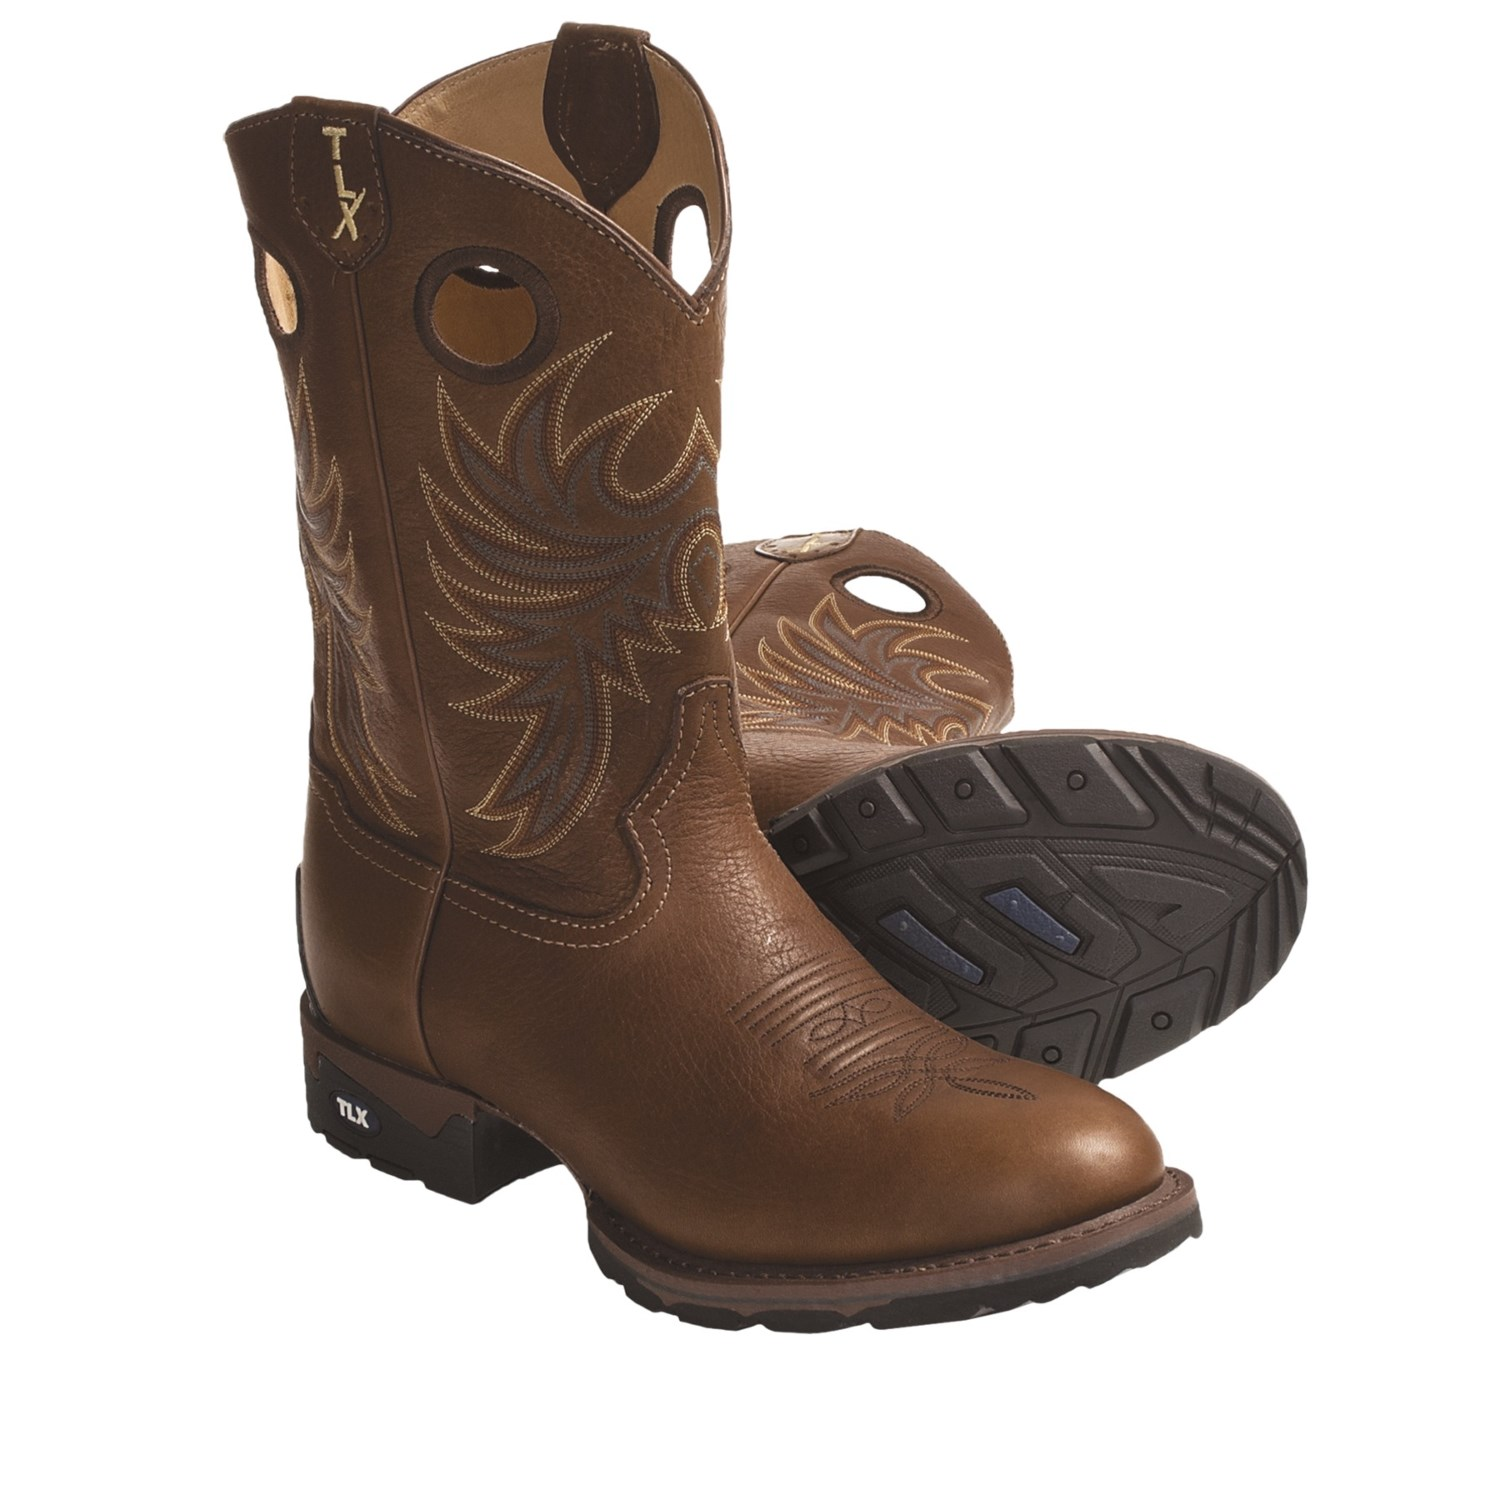 Extra Wide Work Boots t55Nq320